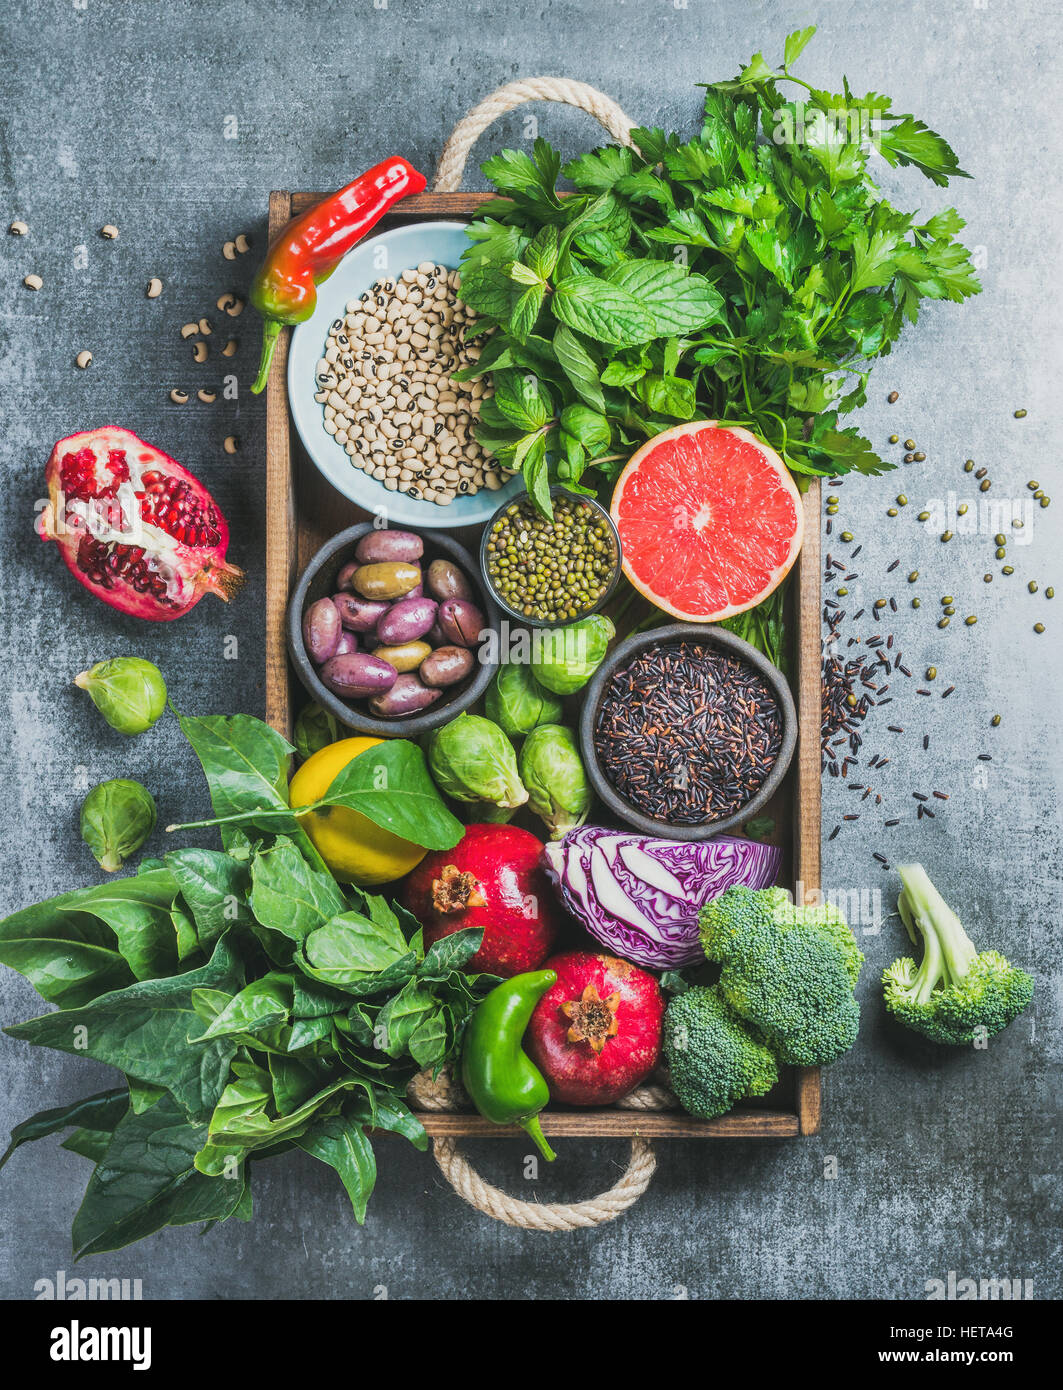 Healthy food ingredients in wooden box over grey background - Stock Image